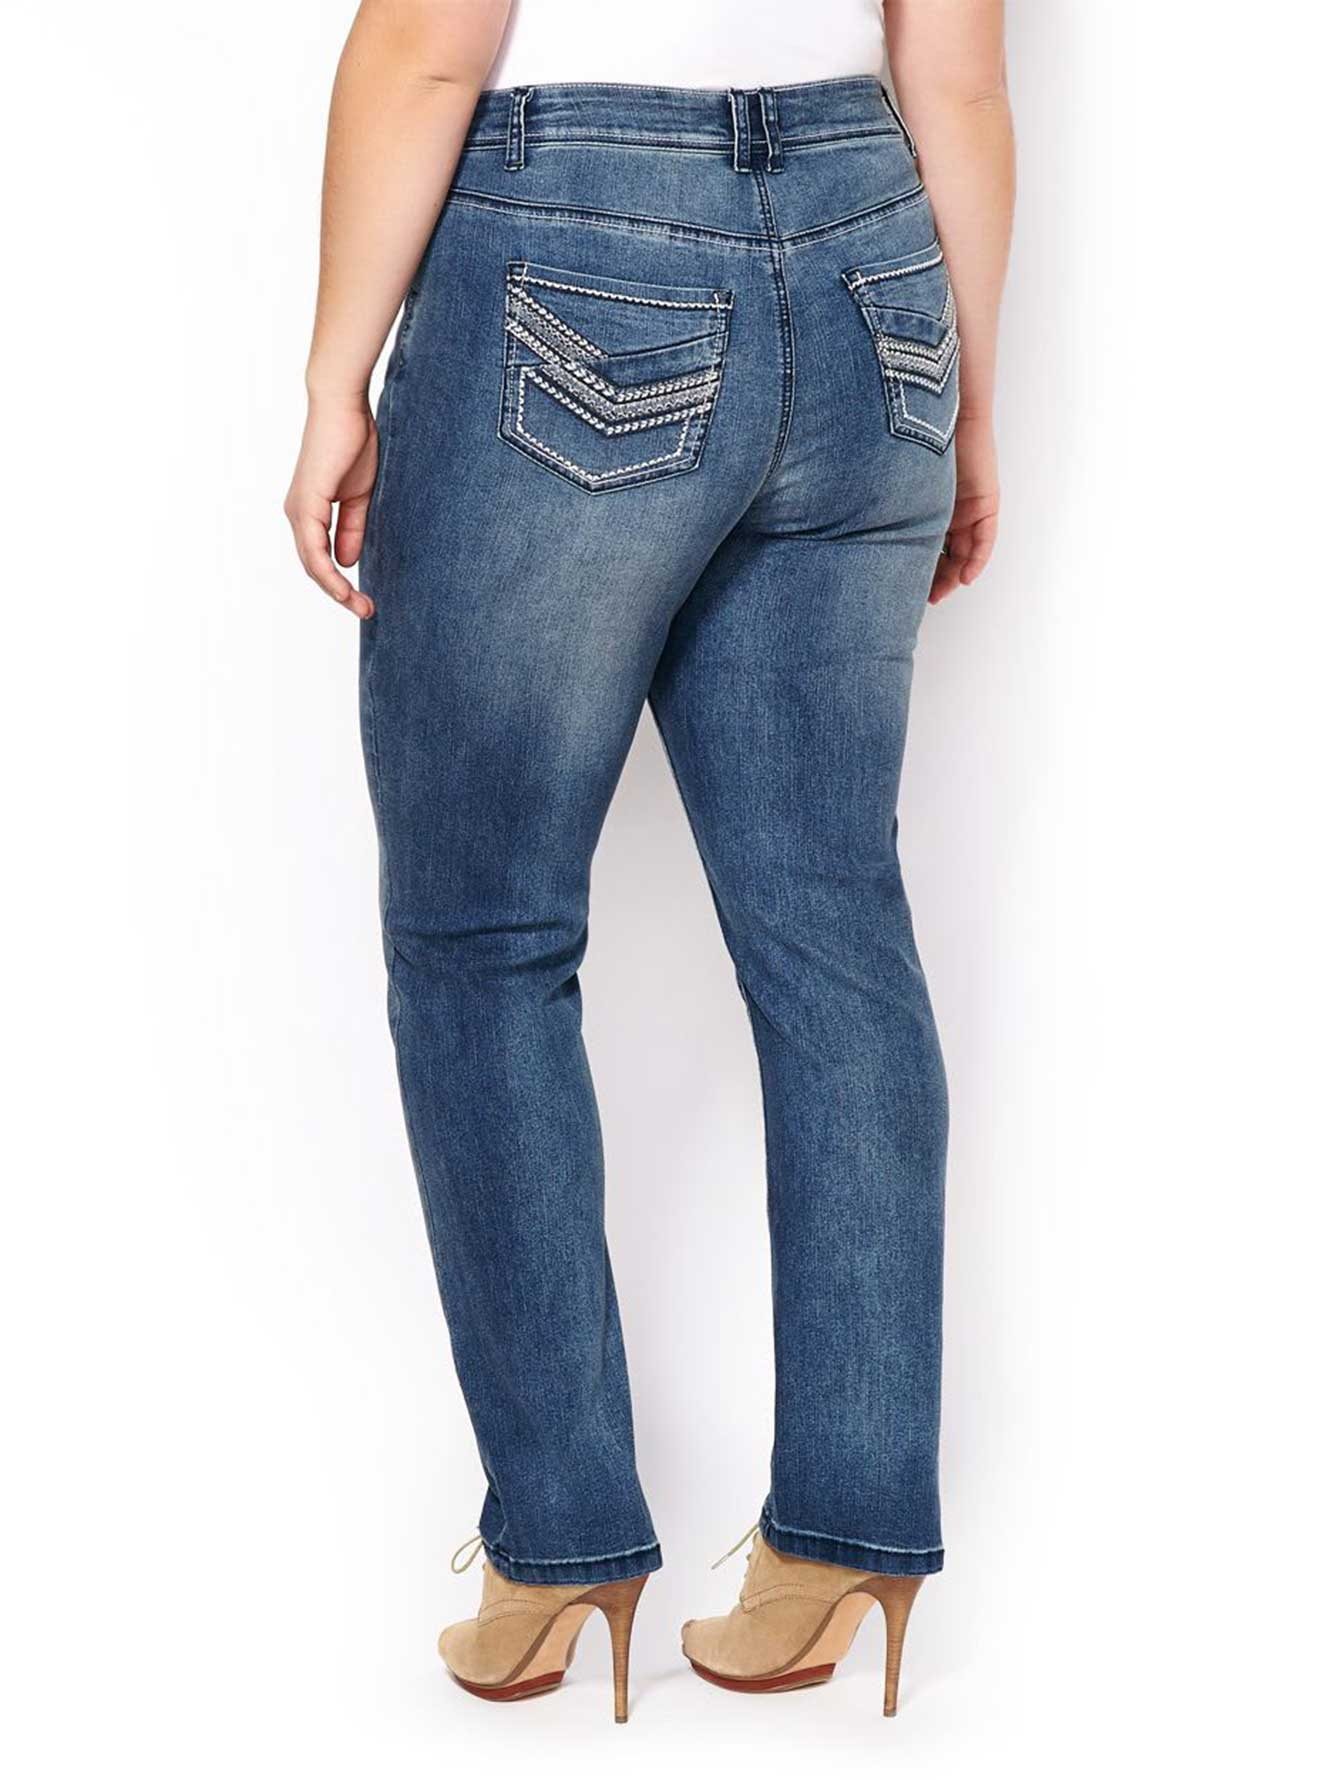 Online custom made jeans delivered worldwide - free shipping worldwide. Design your own custom made jeans -starting $ You pay only for the jeans - free shipping of custom jeans .